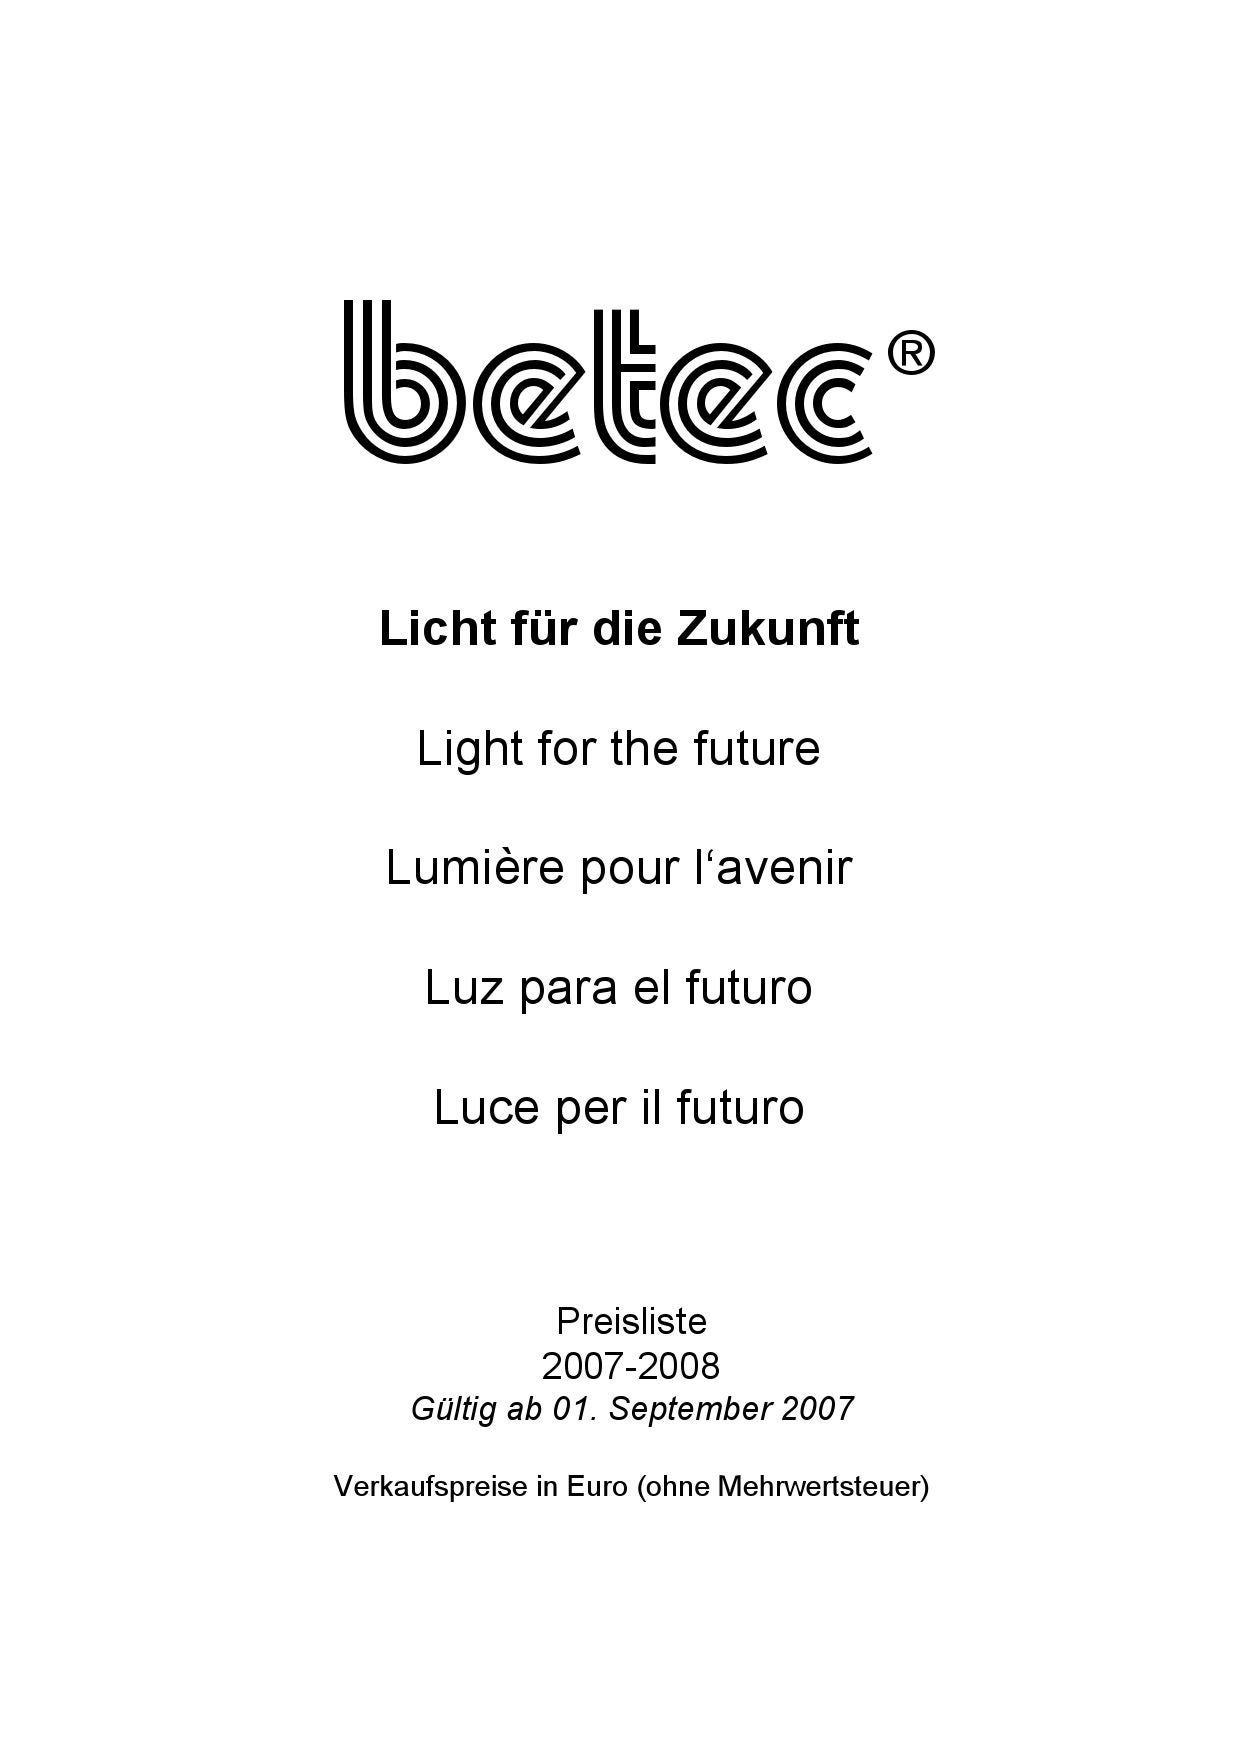 Preisliste_BETEC by Lamp Kft . - issuu